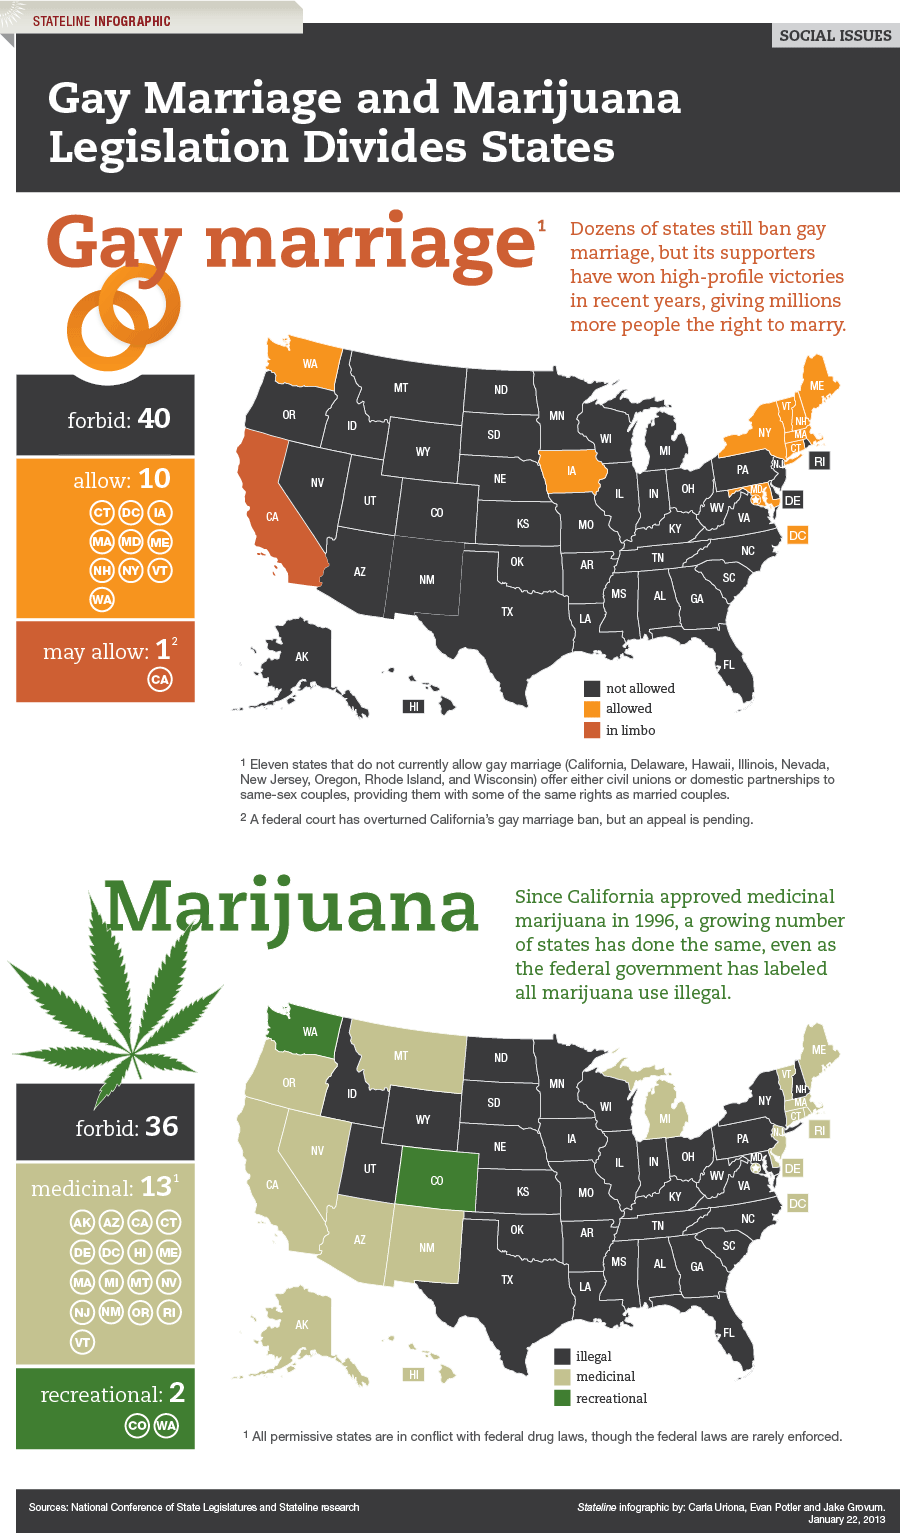 Infographic - Gay Marriage and Marijuana Legislation Divides States